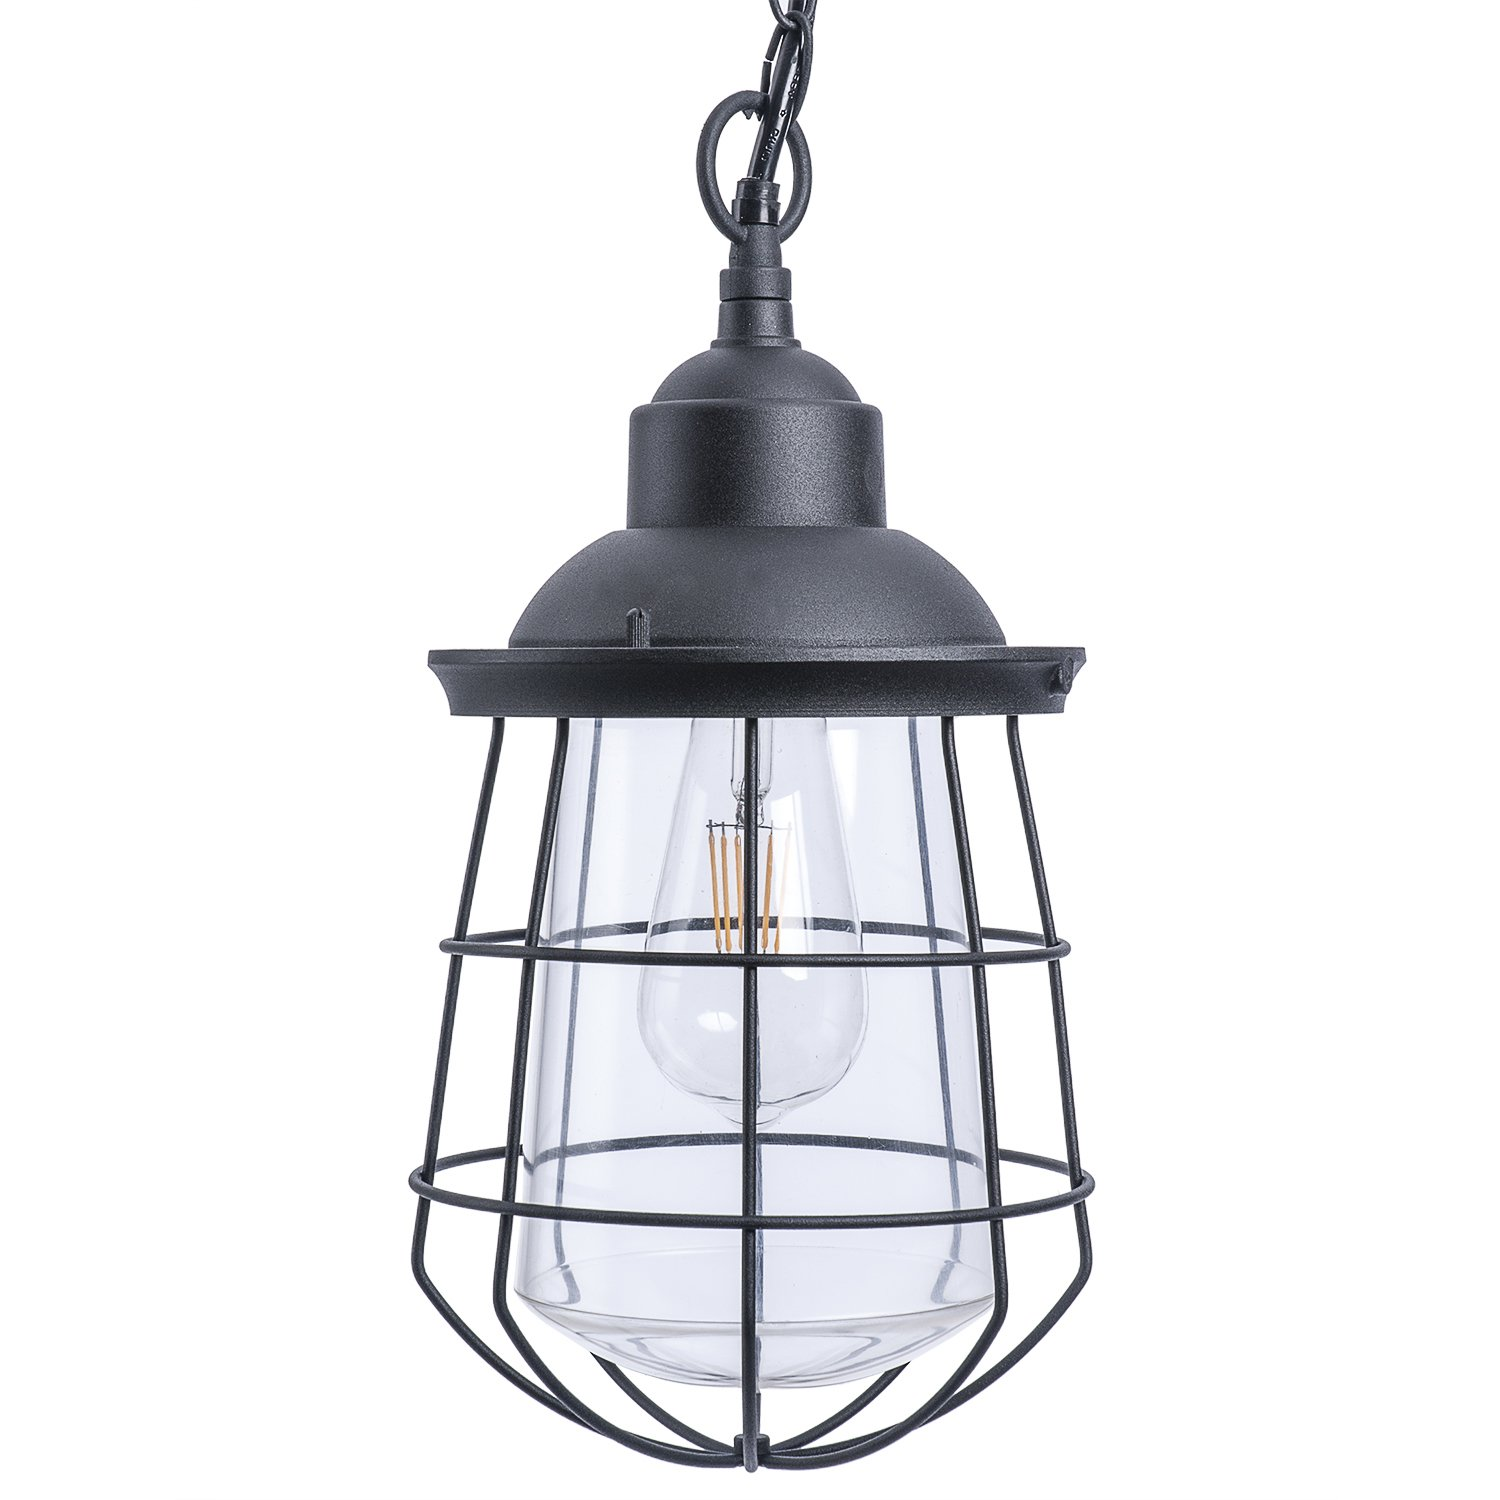 Paradise by Sterno Home Outdoor LED Metal Pendant Light, 120V, 540 Lumens, 6 Watts by Sterno Home